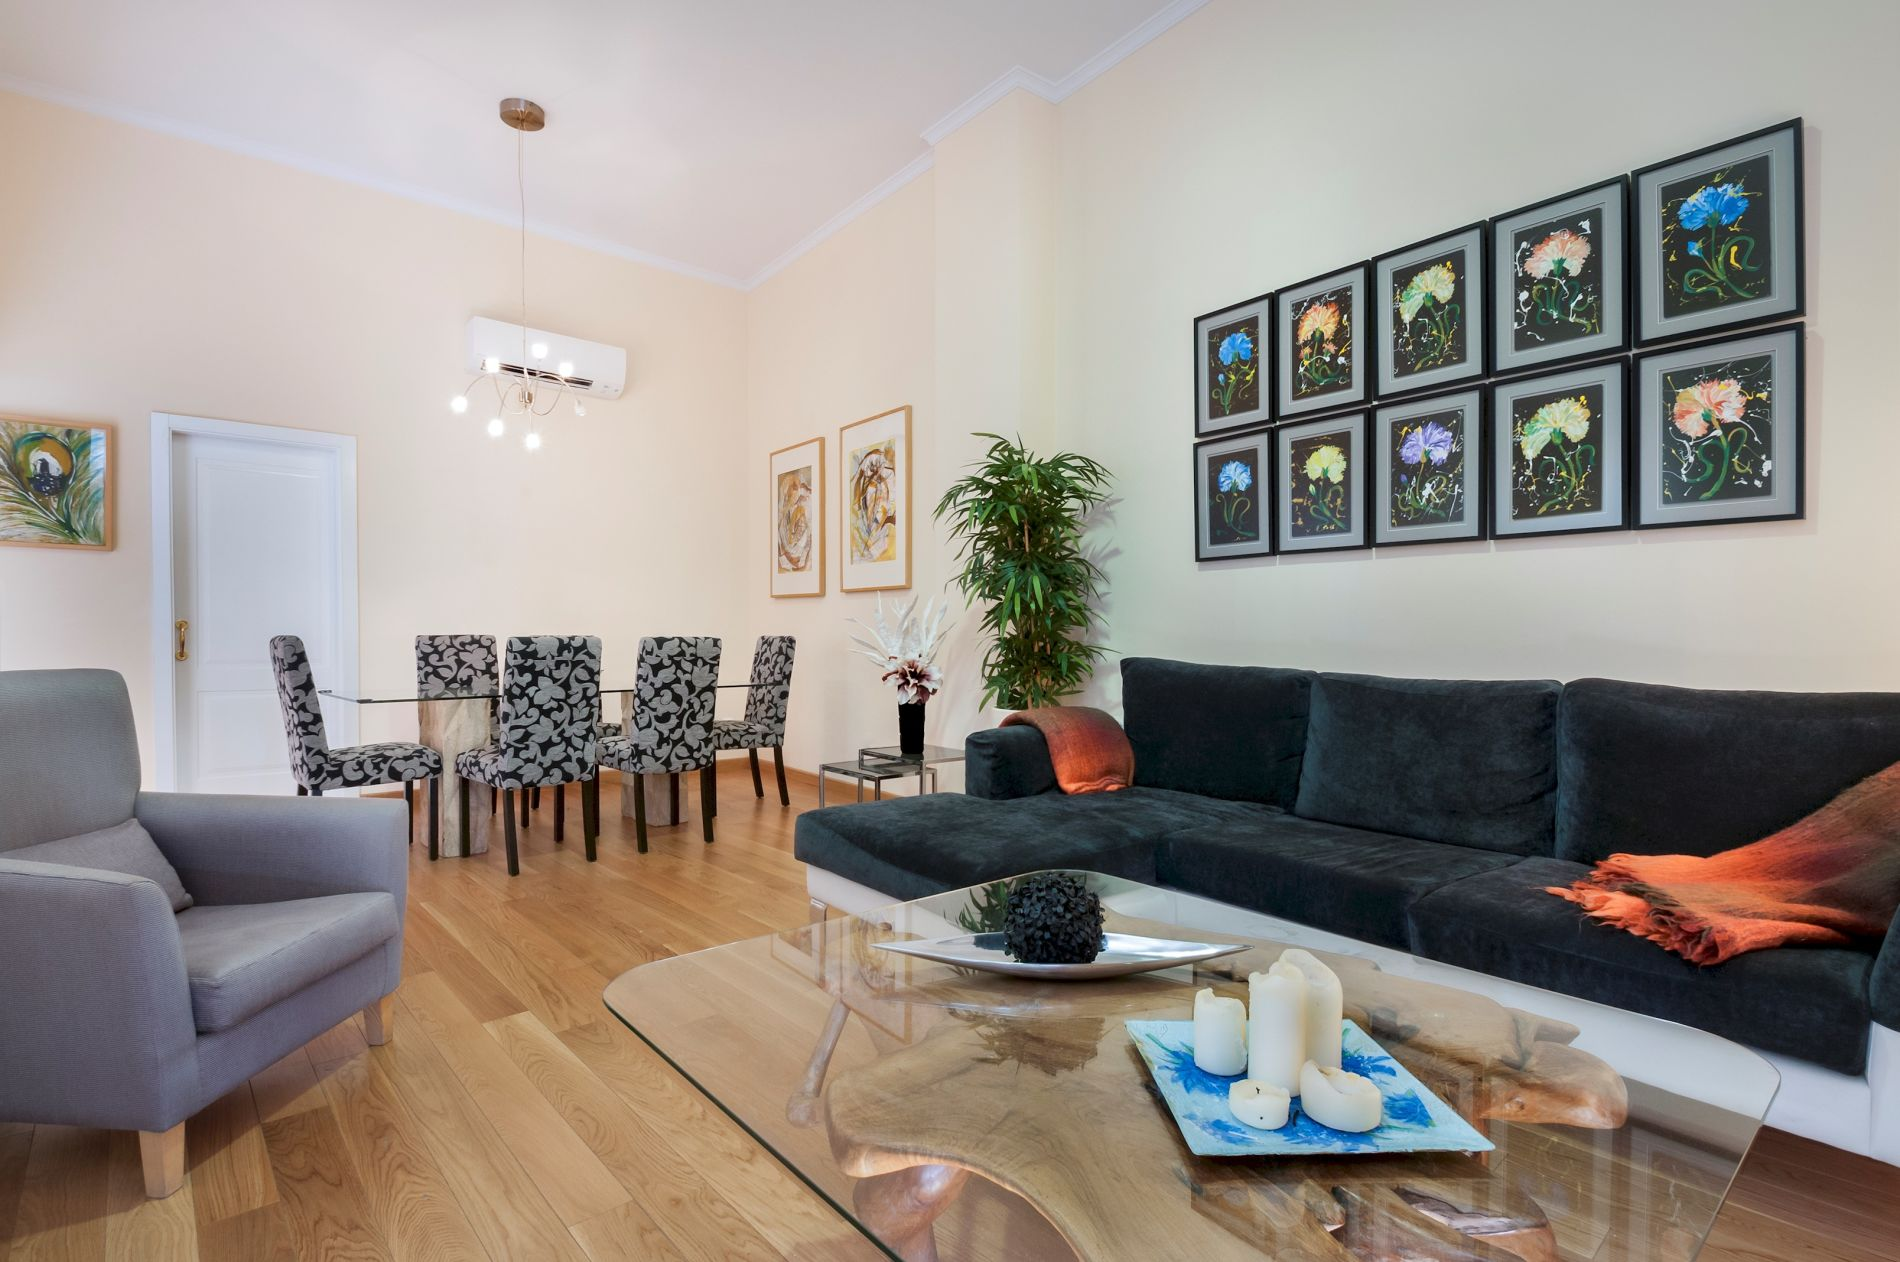 Apartment rental in Seville perfect for short stays